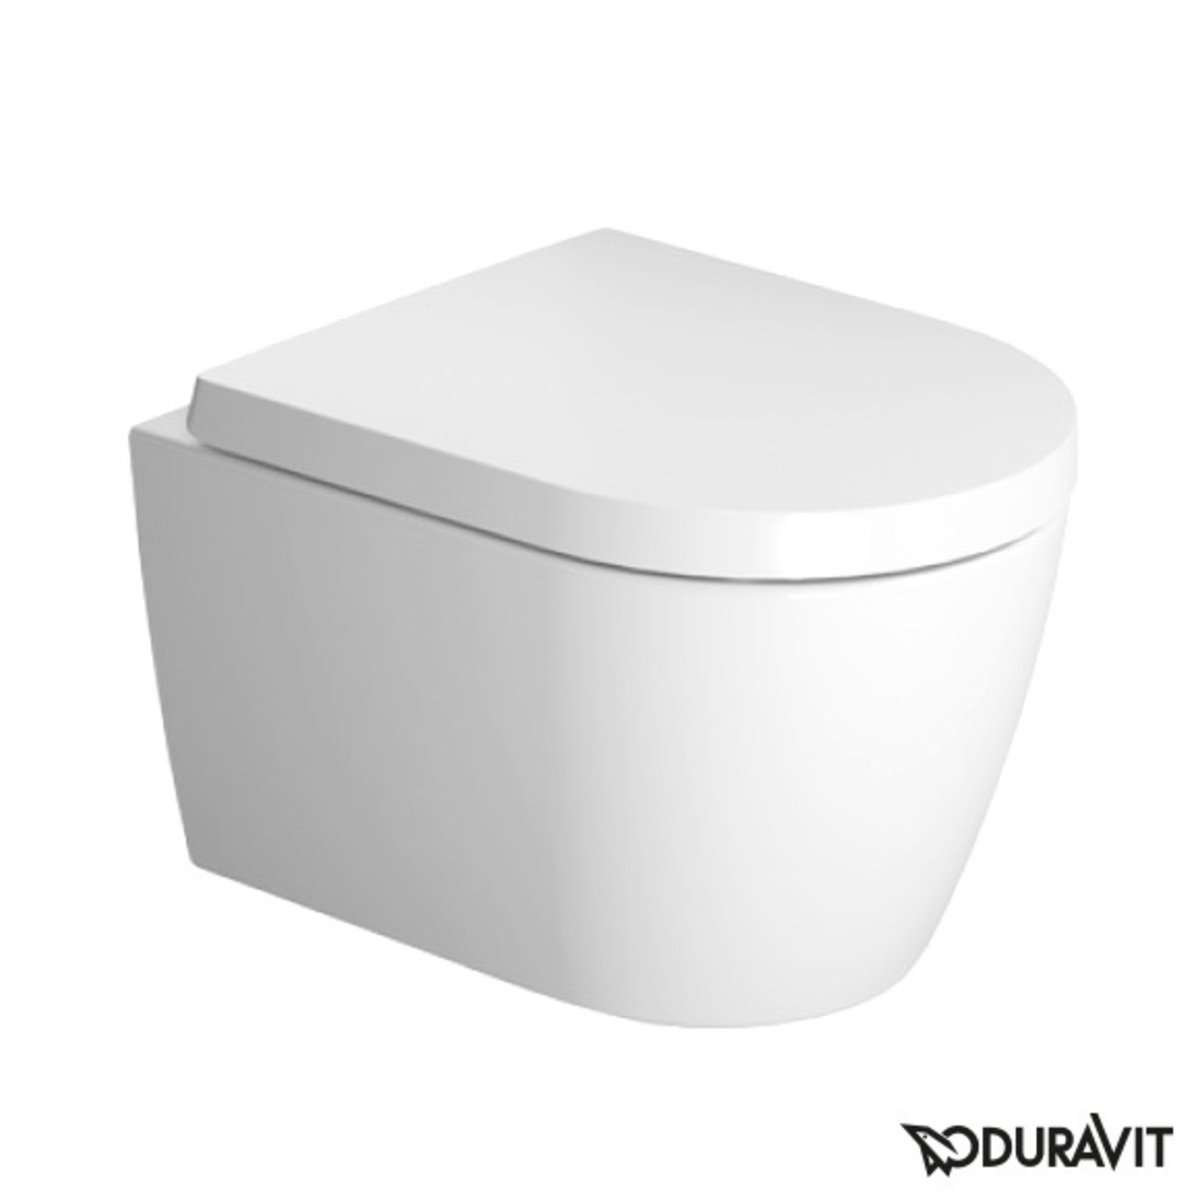 duravit starck me wc suspendu fond creux blanc compact. Black Bedroom Furniture Sets. Home Design Ideas